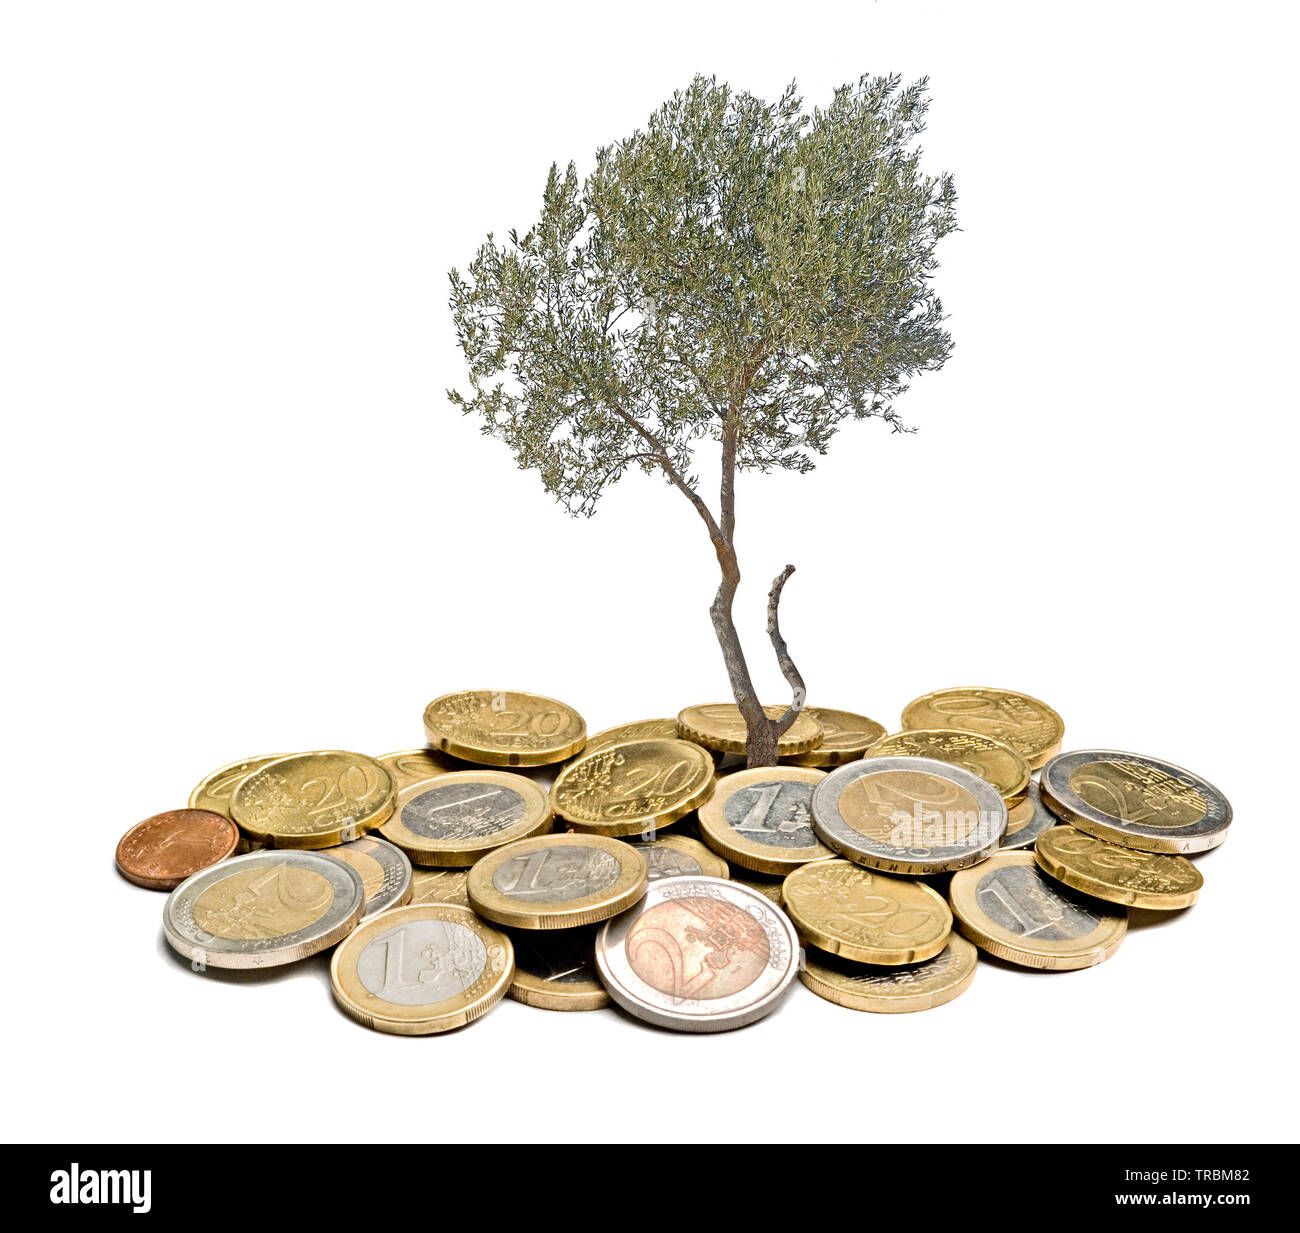 Olive tree growing from pile of coins - Stock Image